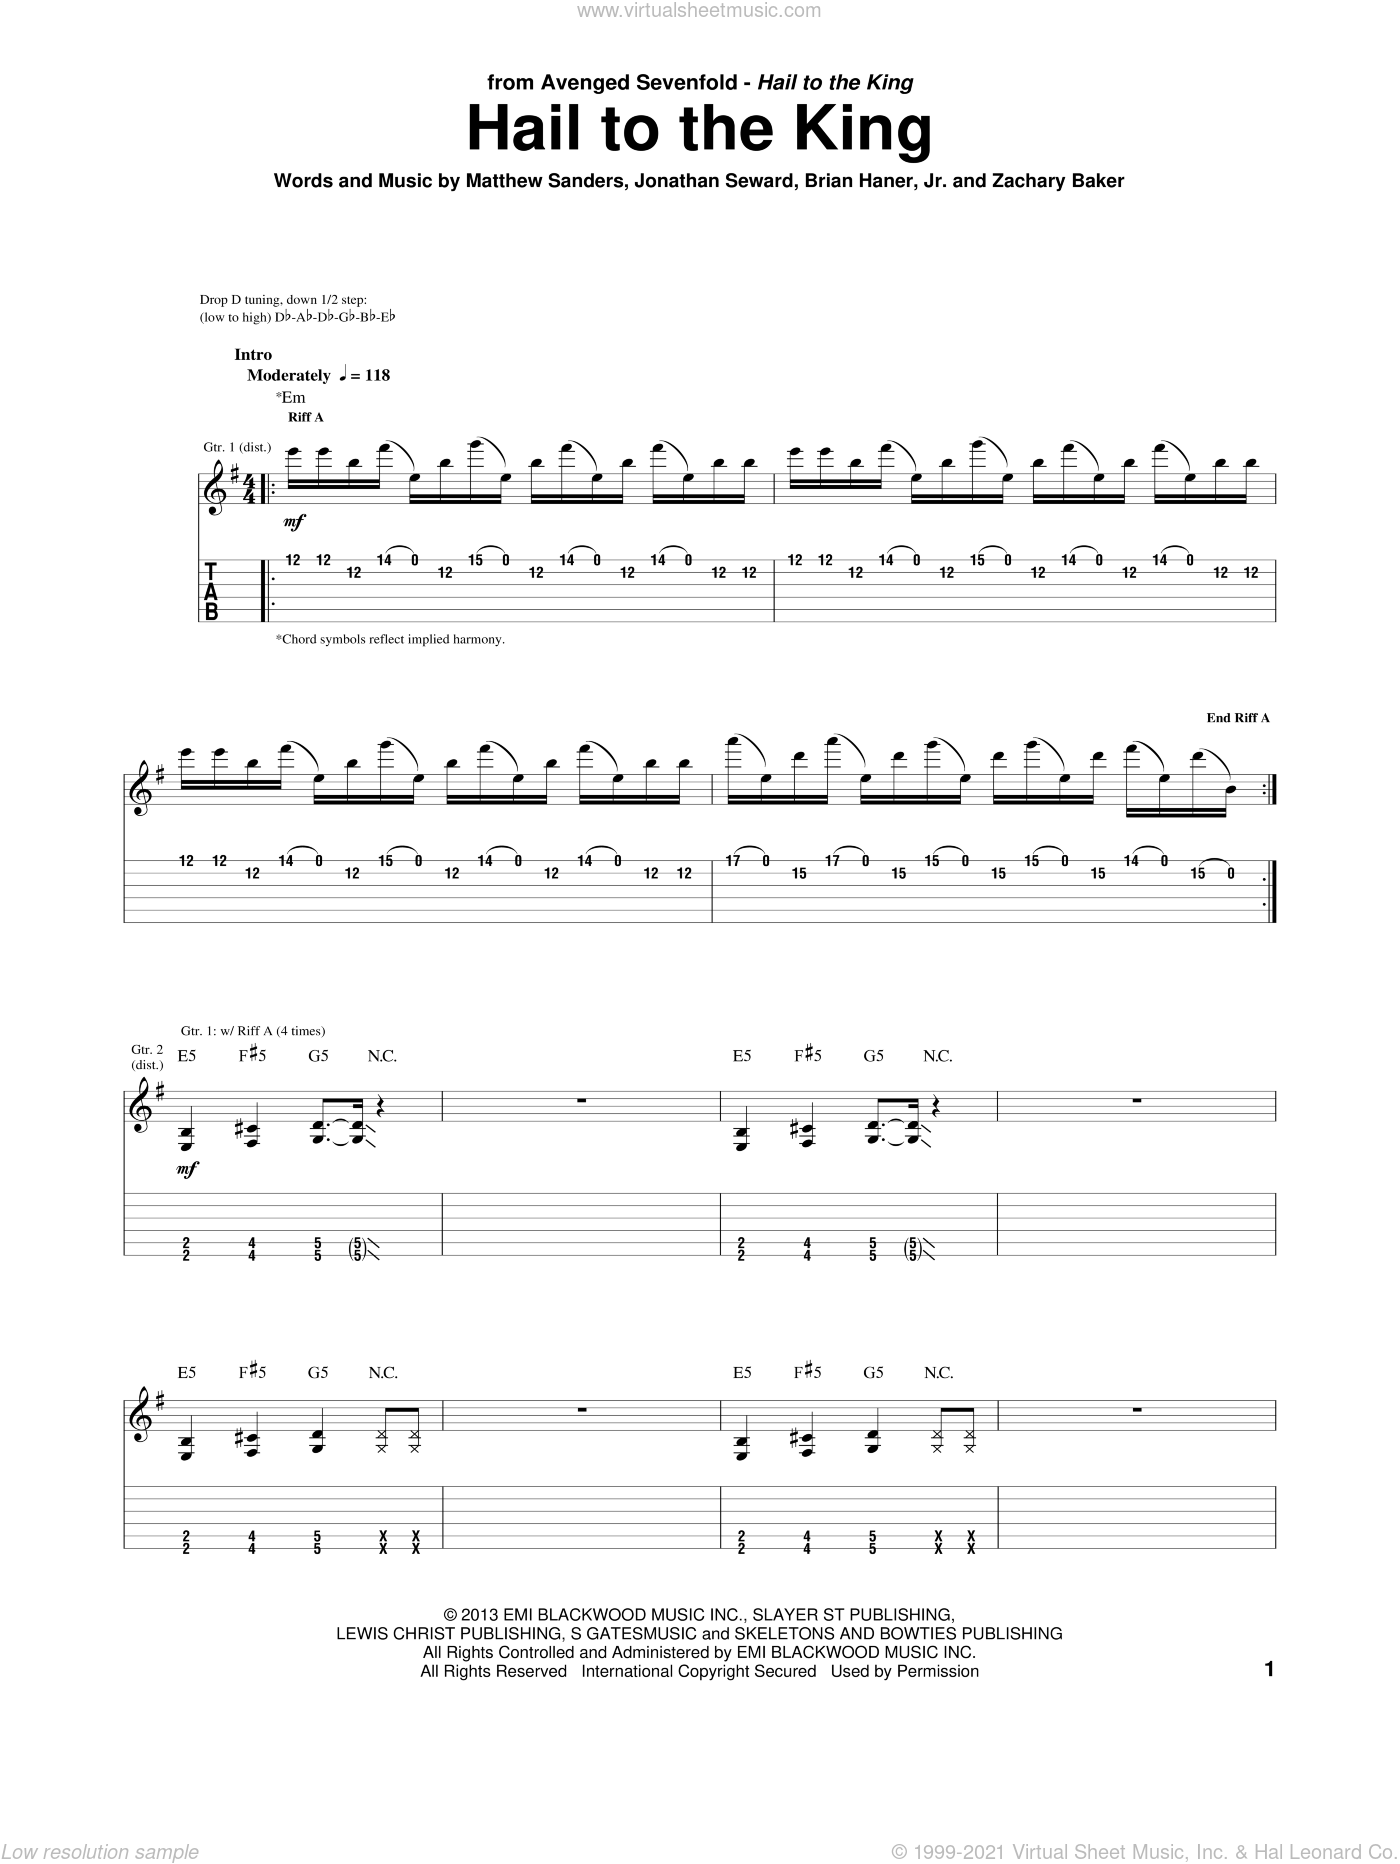 Hail To The King sheet music for guitar (tablature) by Avenged Sevenfold